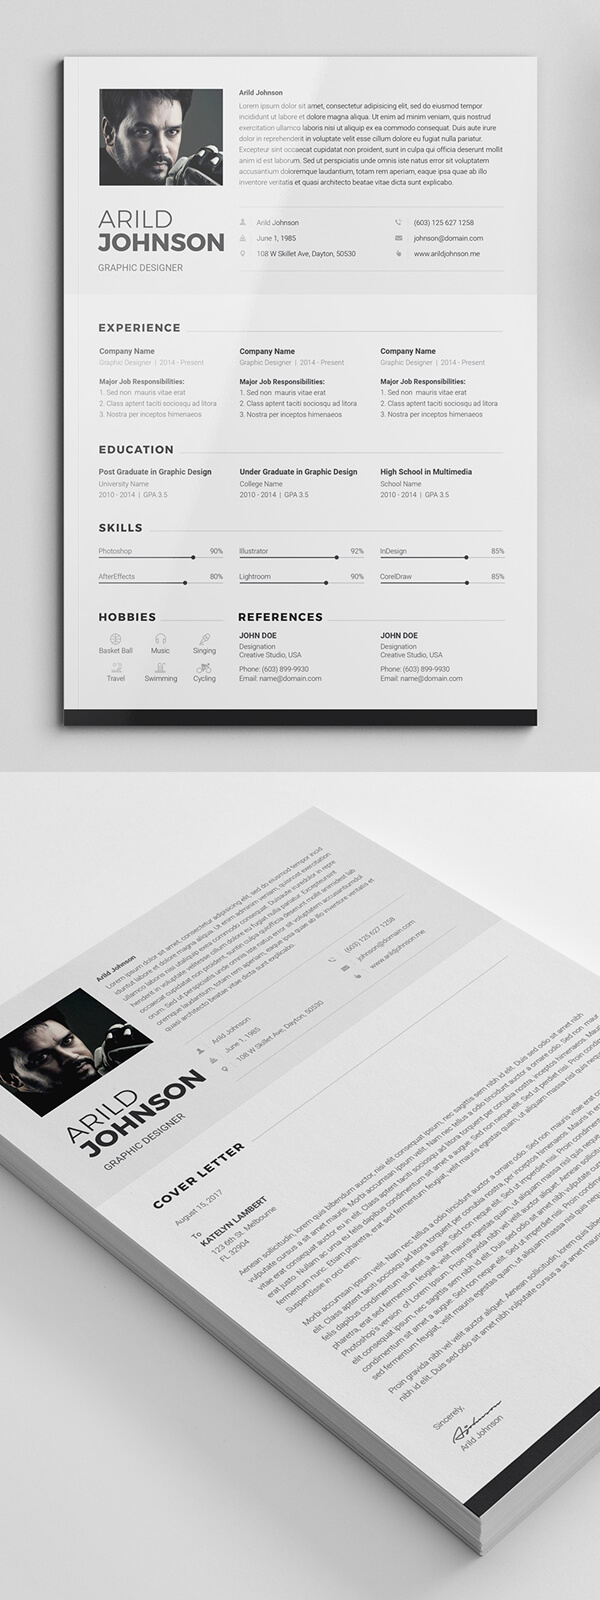 6. Creative Simple Resume Template & Cover Letter